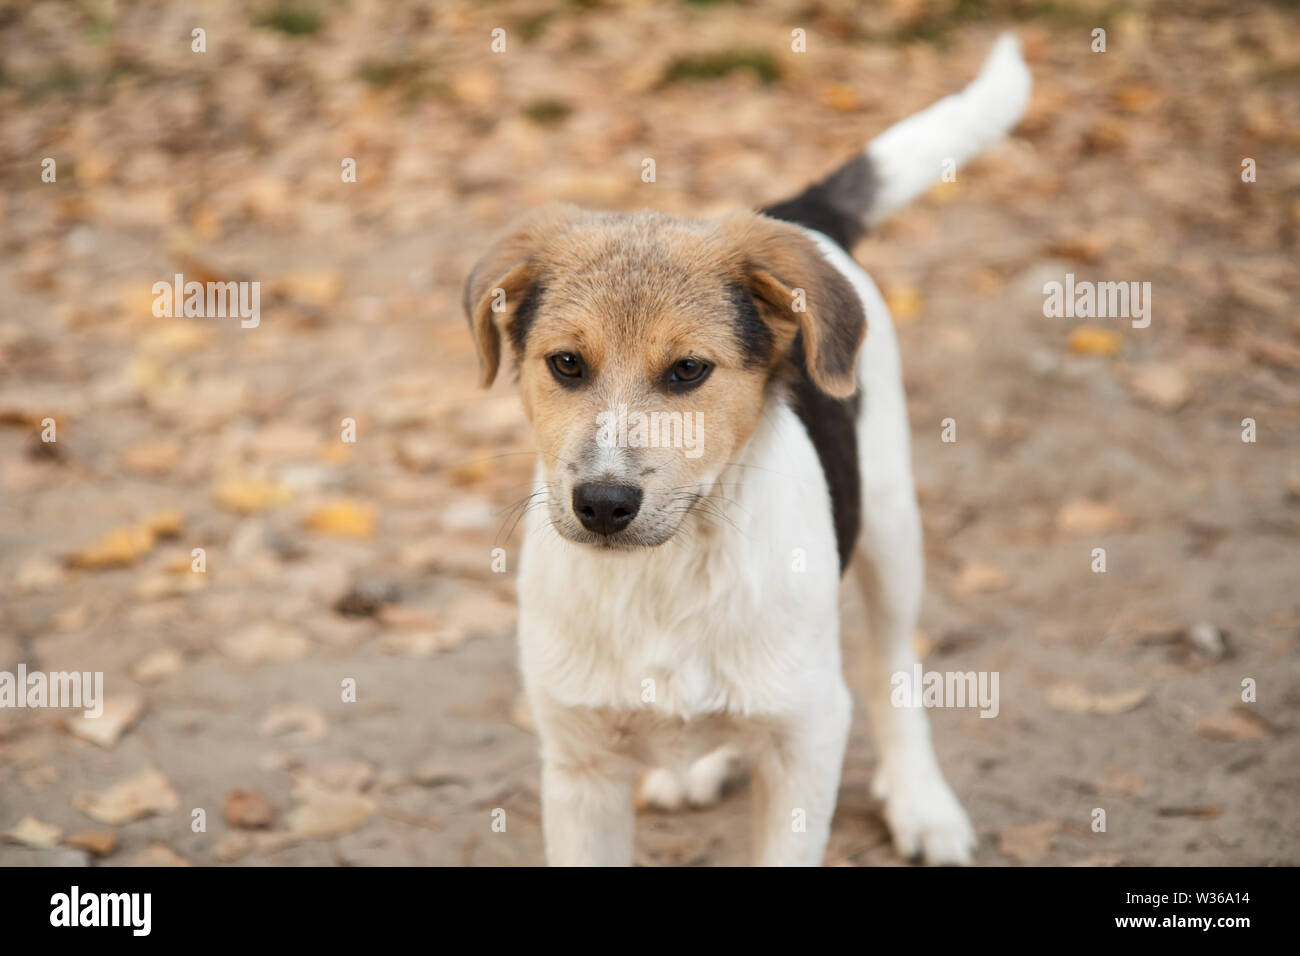 Homeless little dog looking at something on the road in the forest in autumn. - Stock Image